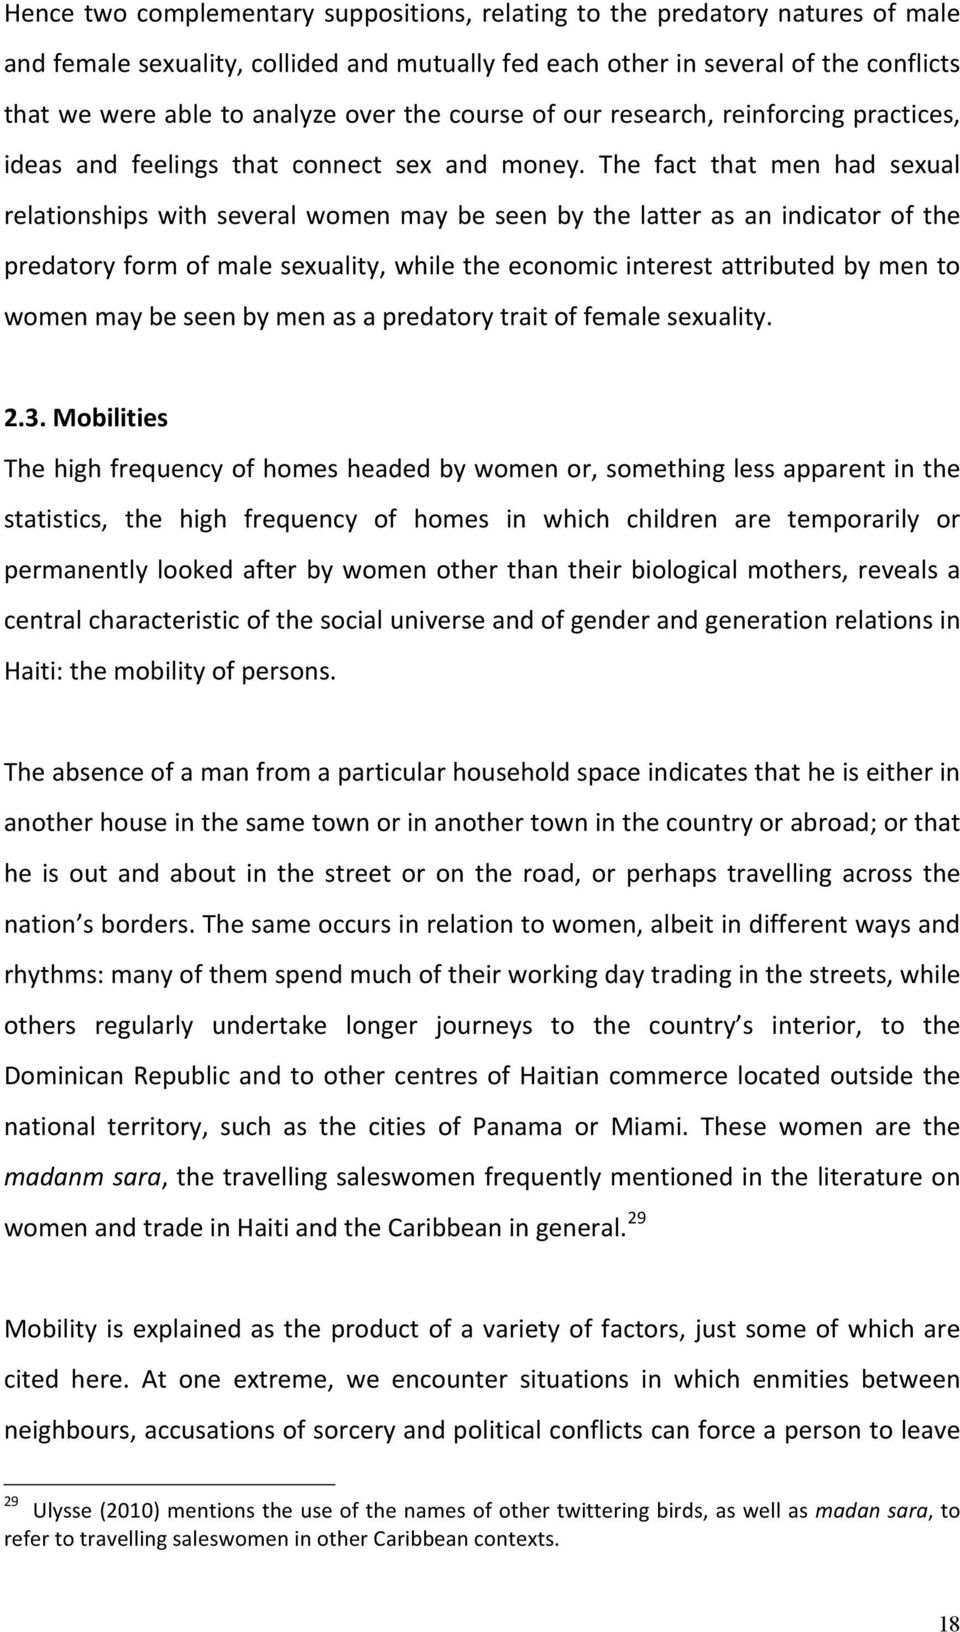 The fact that men had sexual relationships with several women may be seen by the latter as an indicator of the predatory form of male sexuality, while the economic interest attributed by men to women